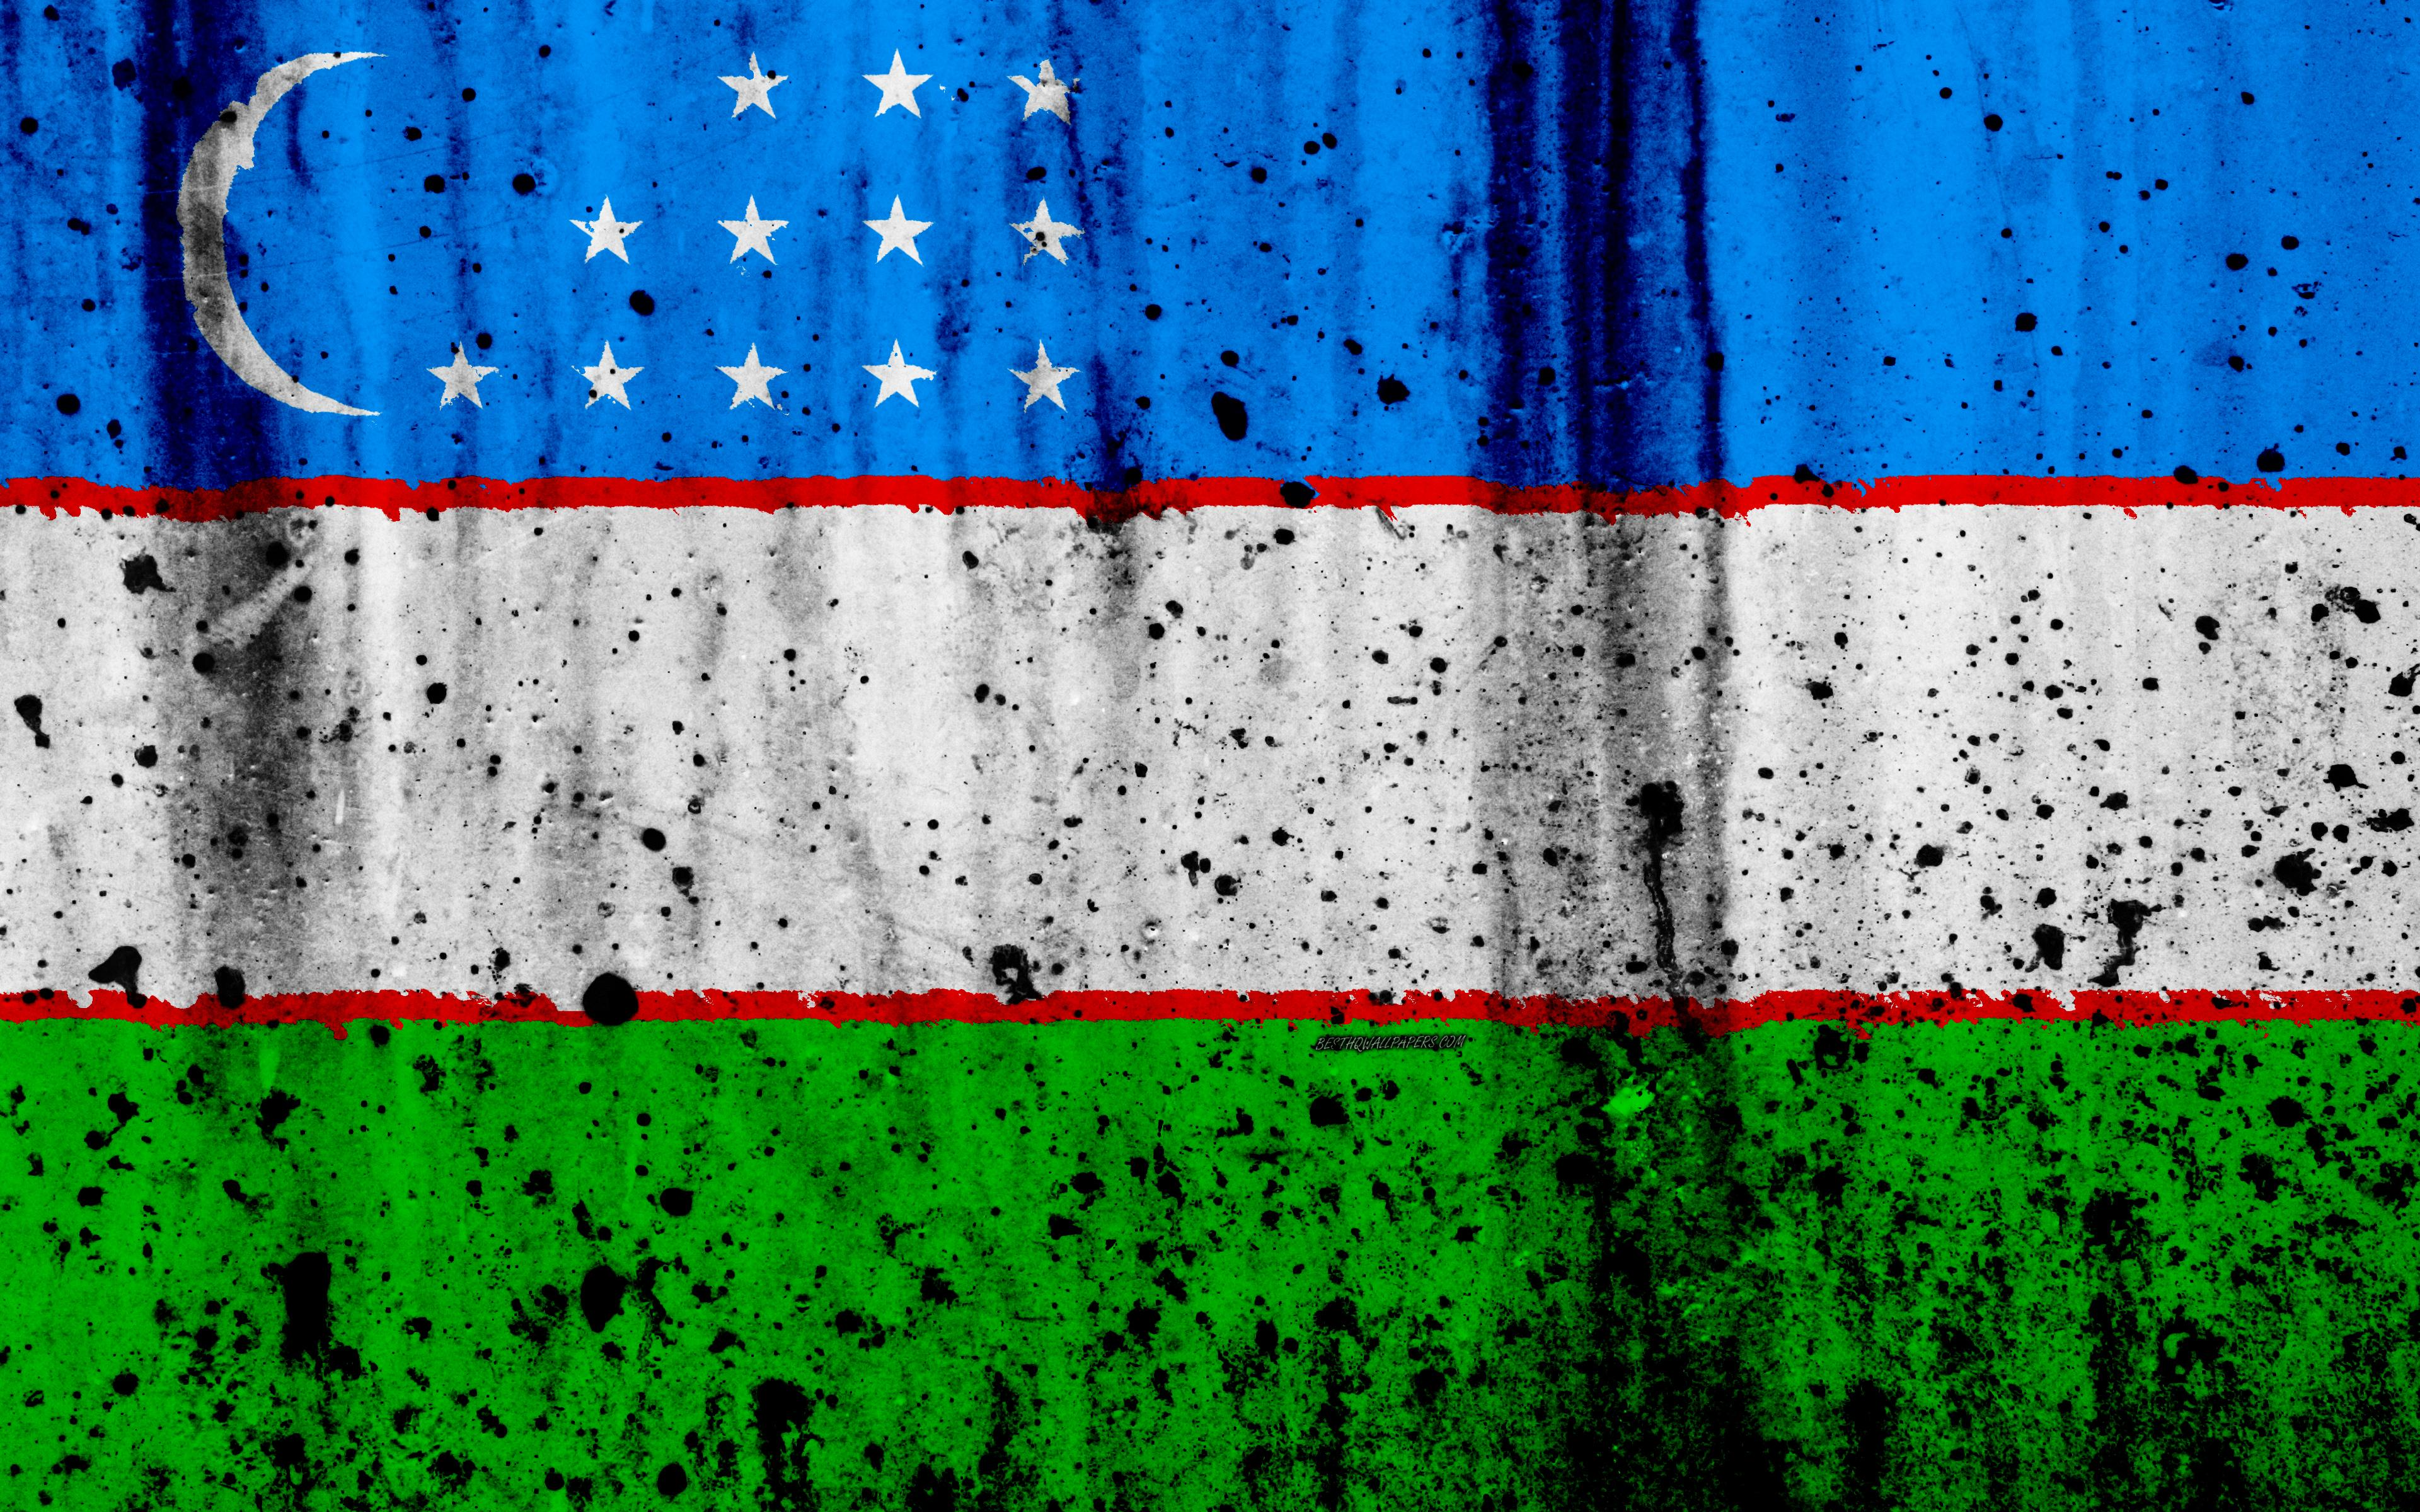 Download wallpapers Uzbek flag, 4k, grunge, flag of Uzbekistan, Asia